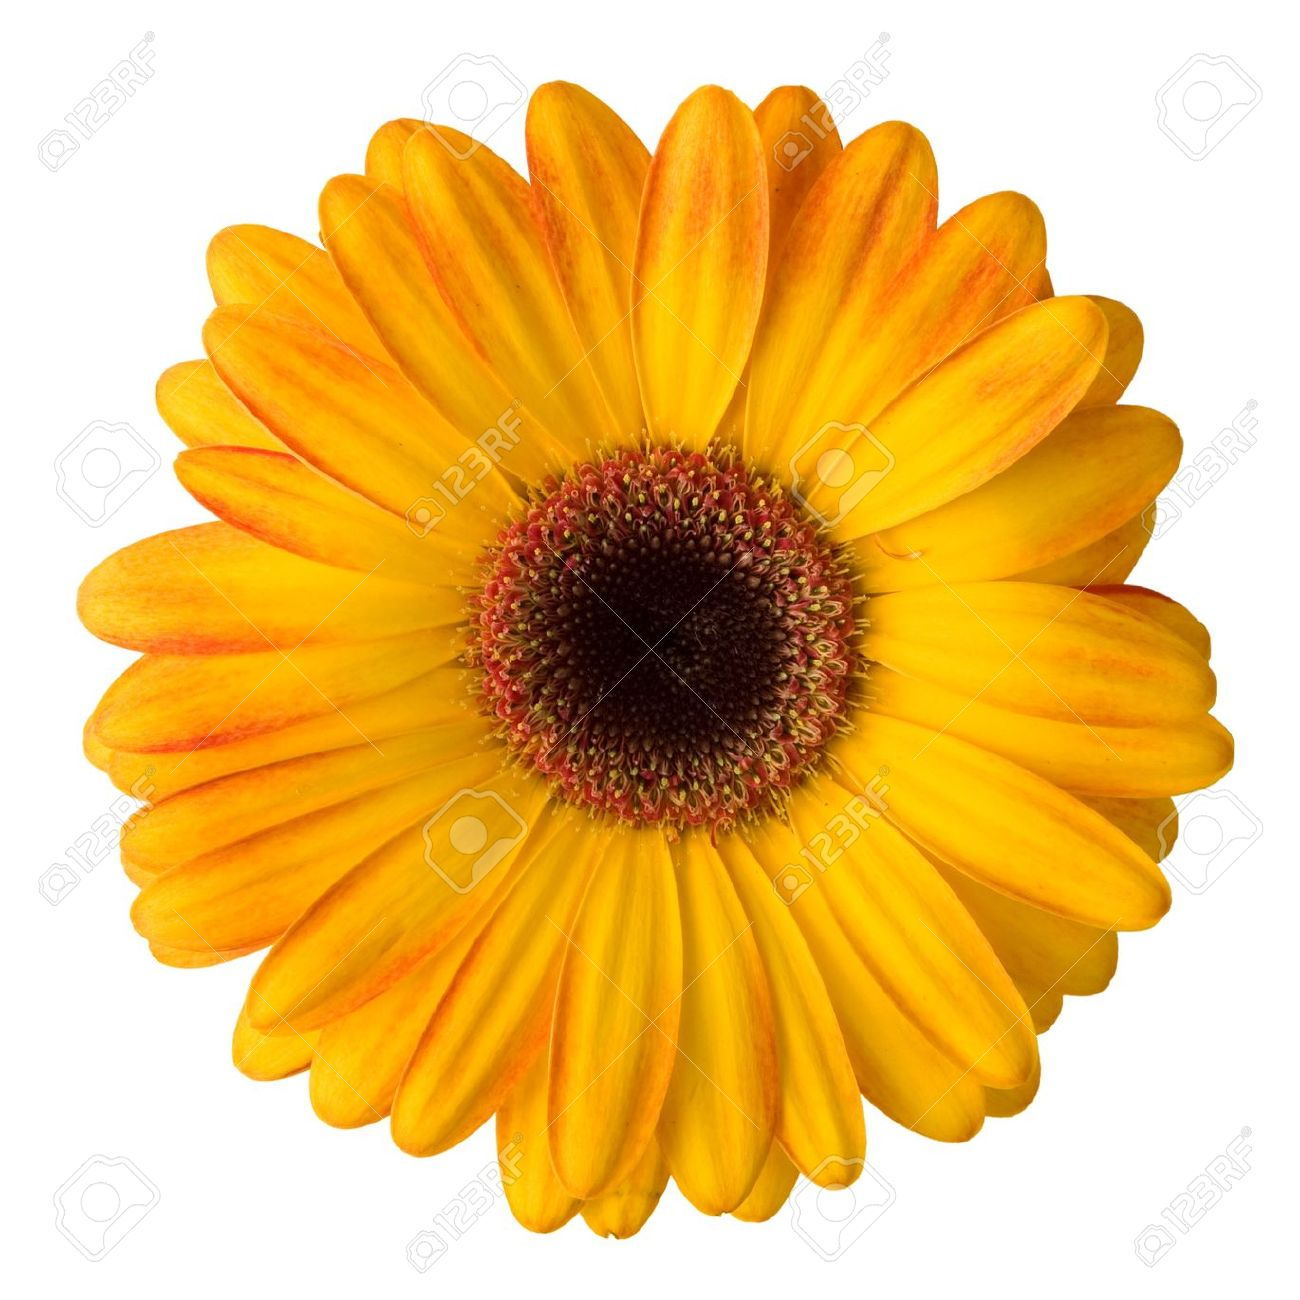 yellow daisy images u0026 stock pictures royalty free yellow daisy